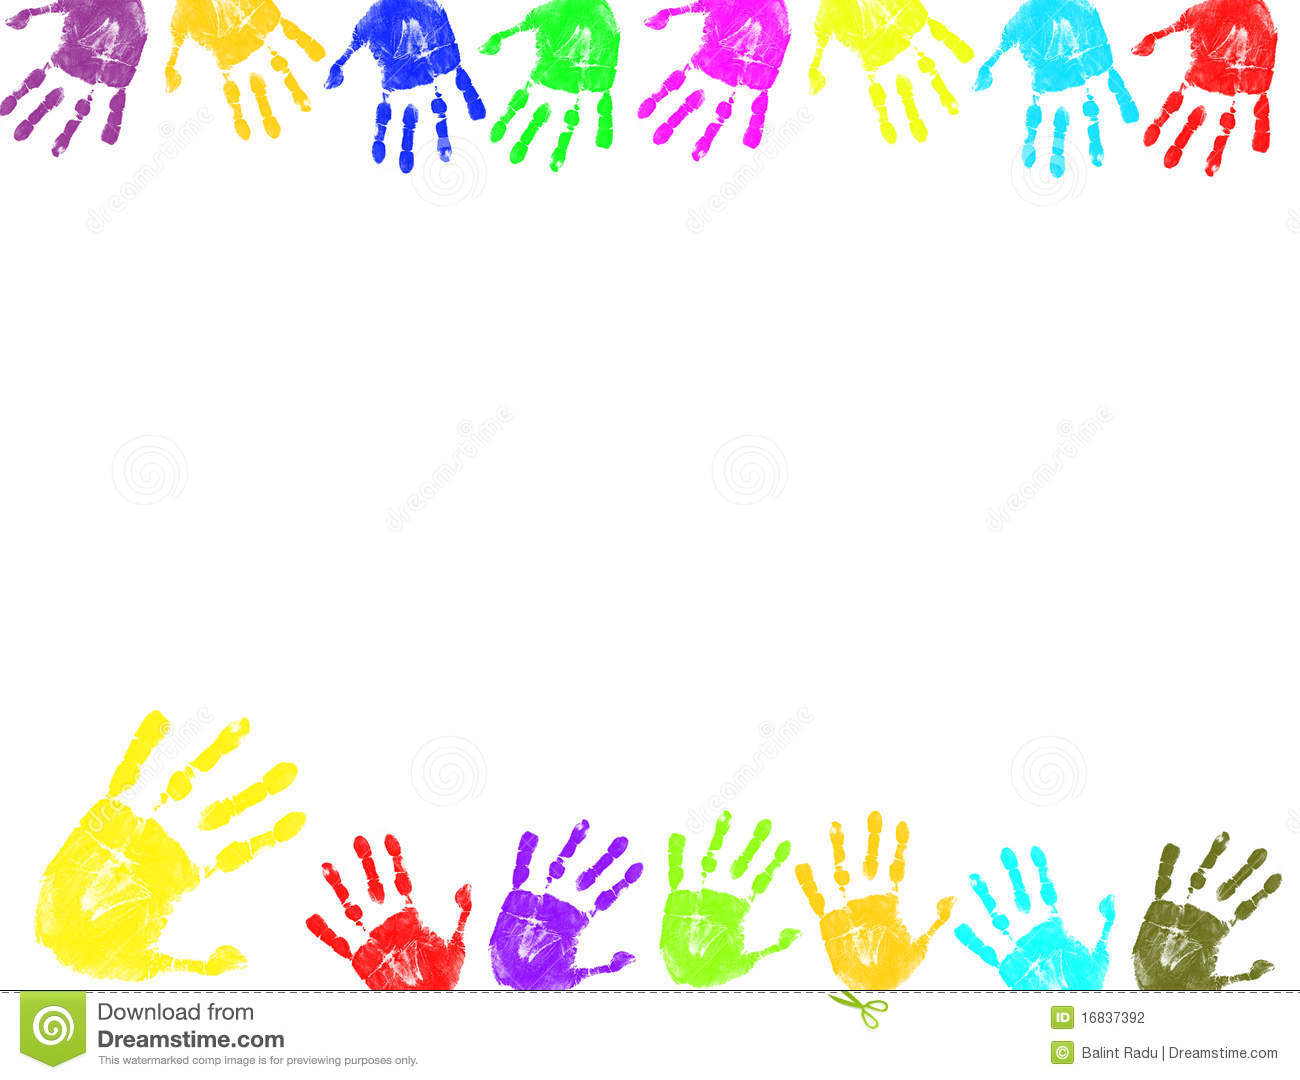 Colorful hand prints frame stock vector. Illustration of wallpaper ...